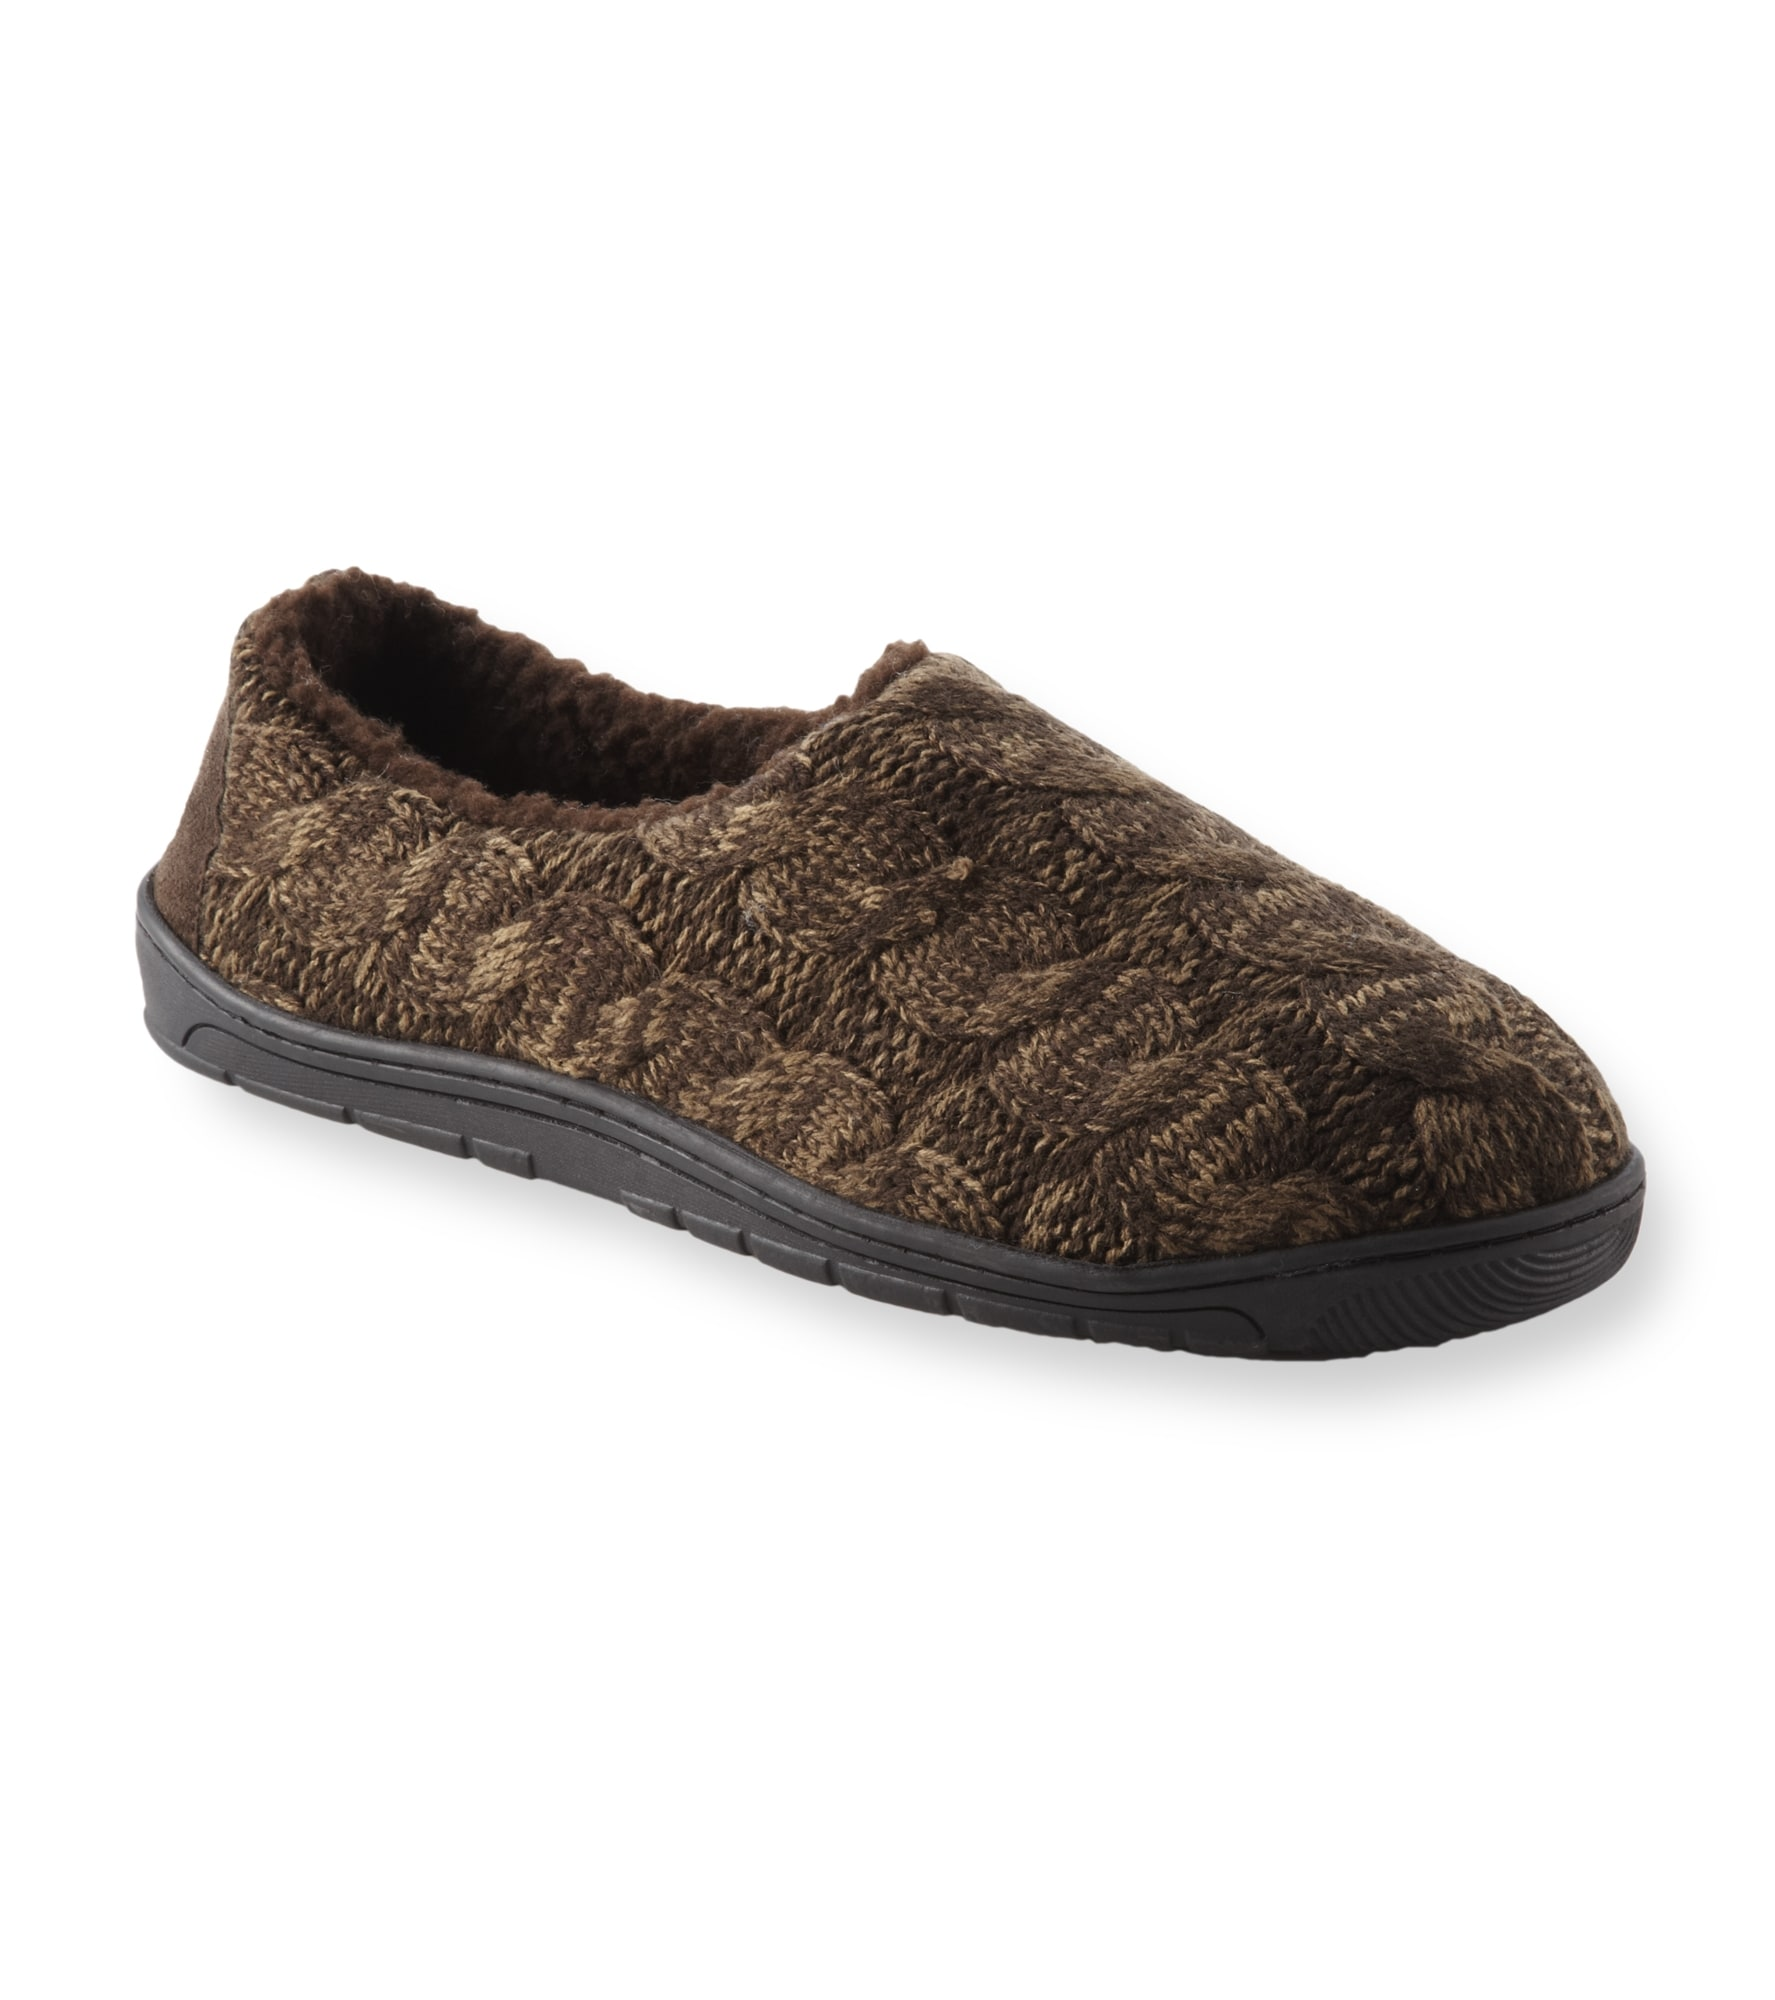 Muk Luks 'Neal' Brown Cable Knit Slippers